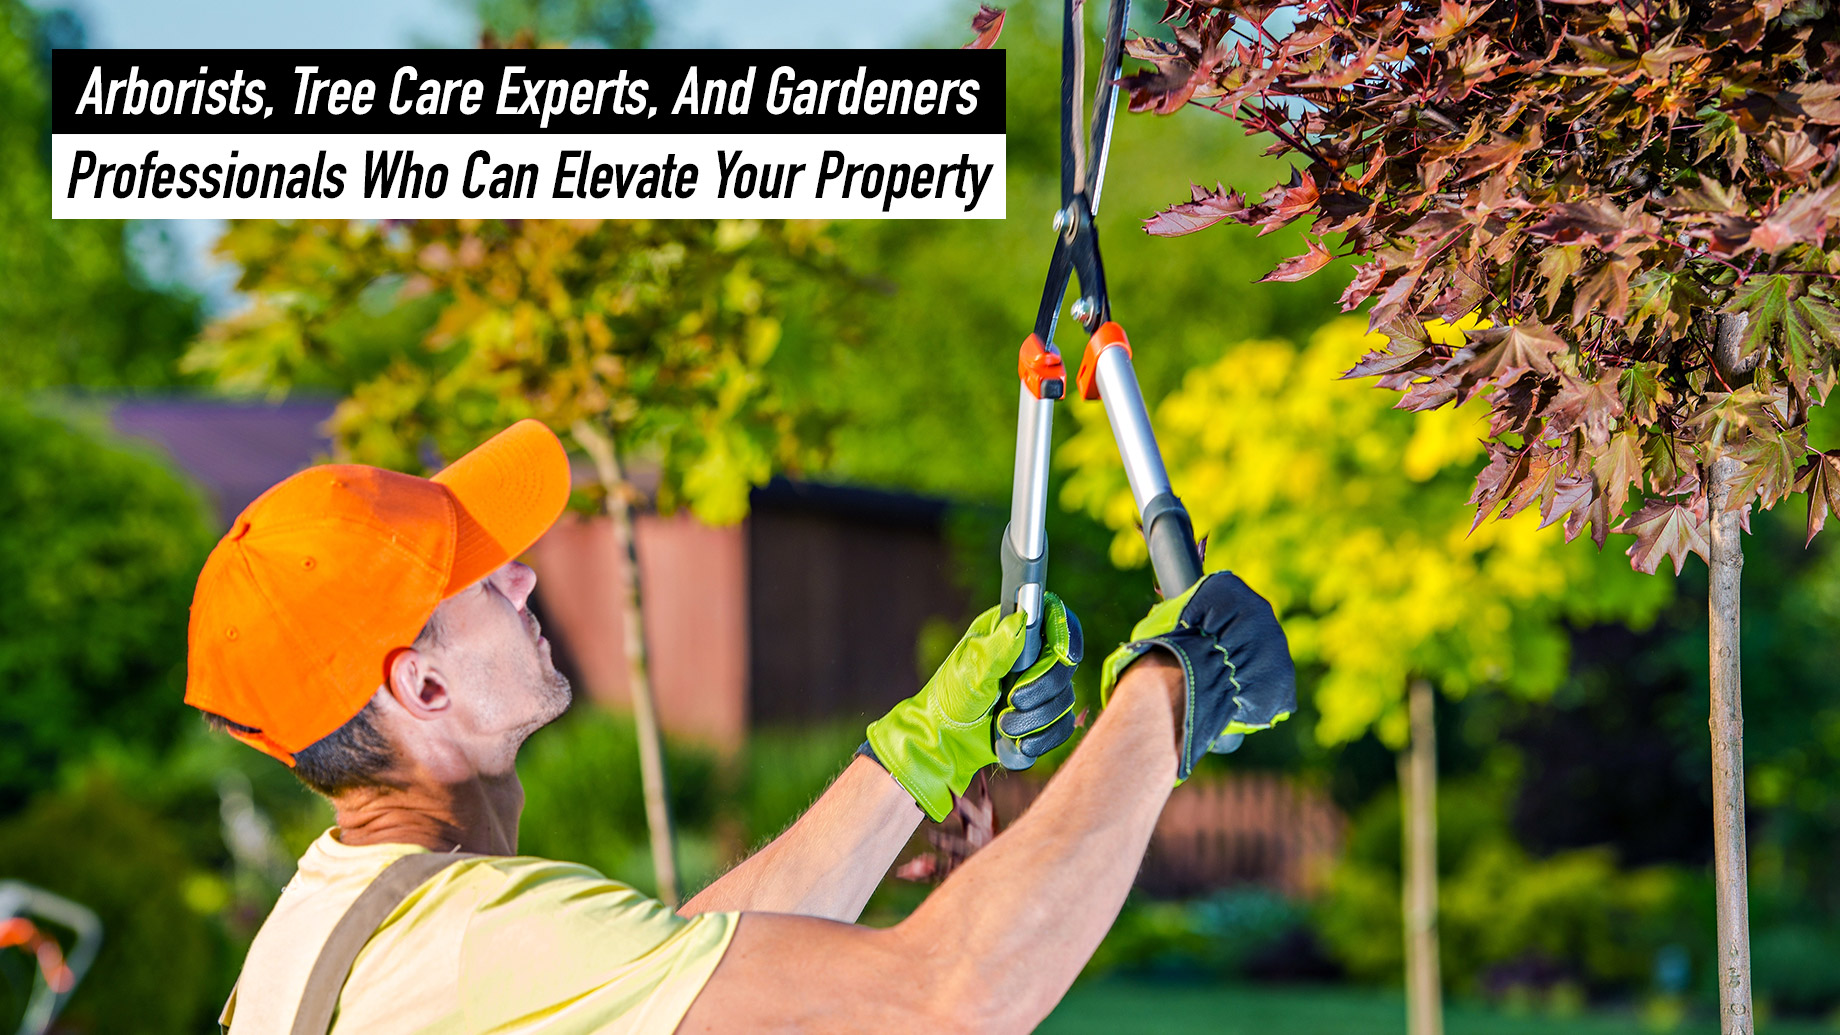 Arborists, Tree Care Experts, And Gardeners – Professionals Who Can Elevate Your Property